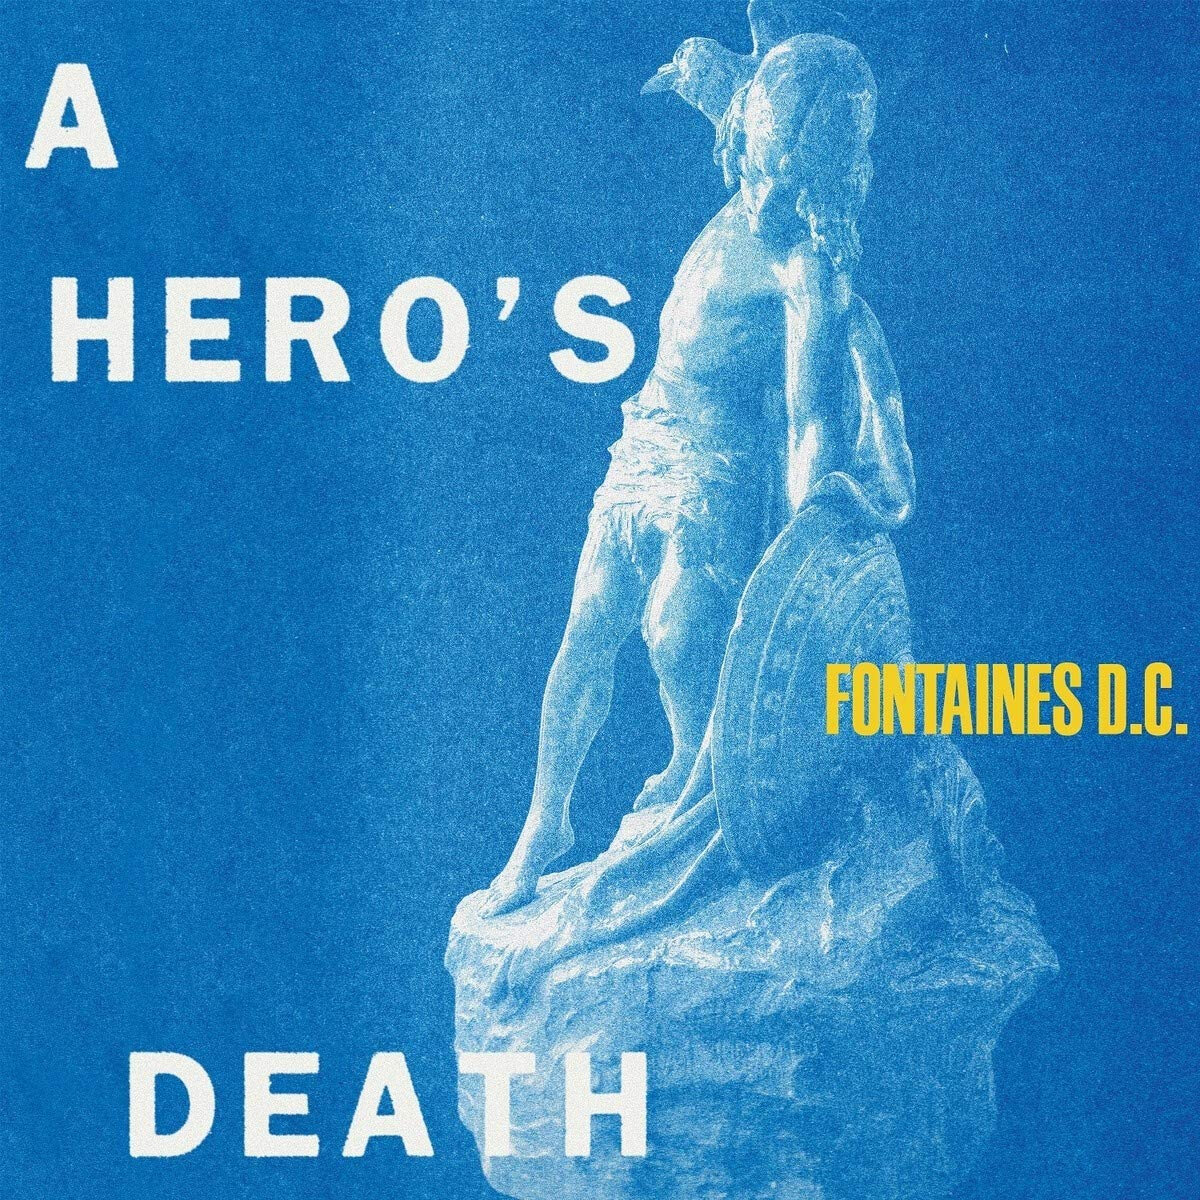 FONTAINES D.C. – A Hero's Death (2020)